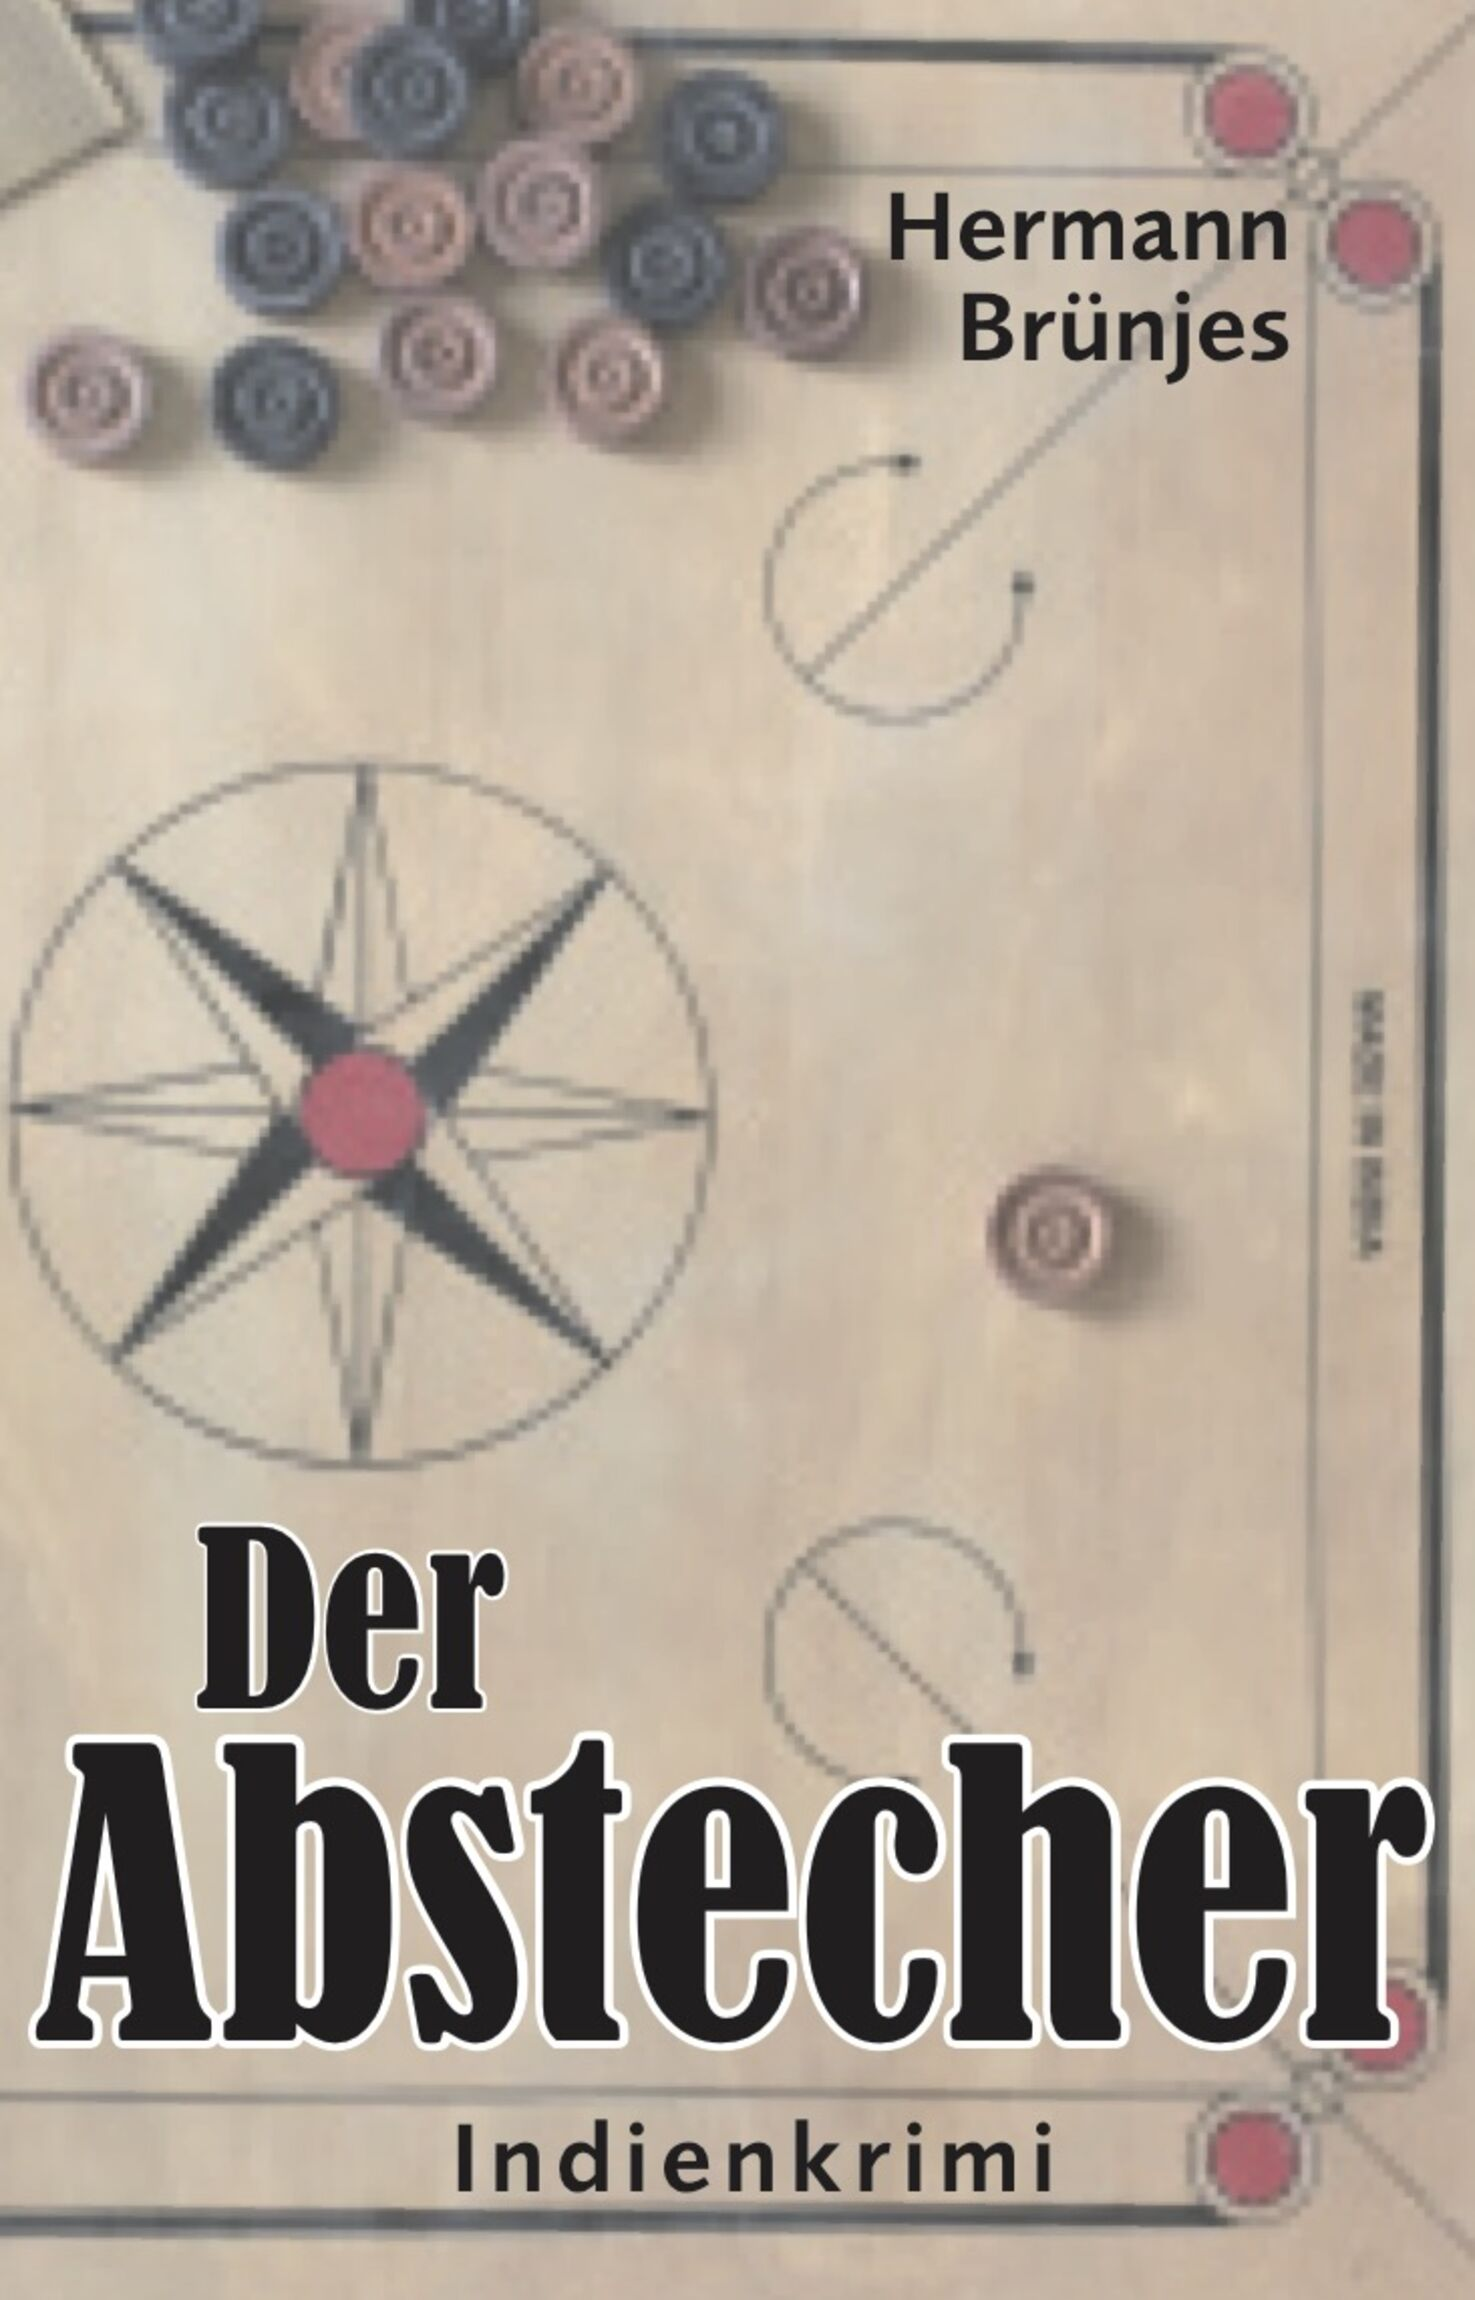 Abstecher_2018